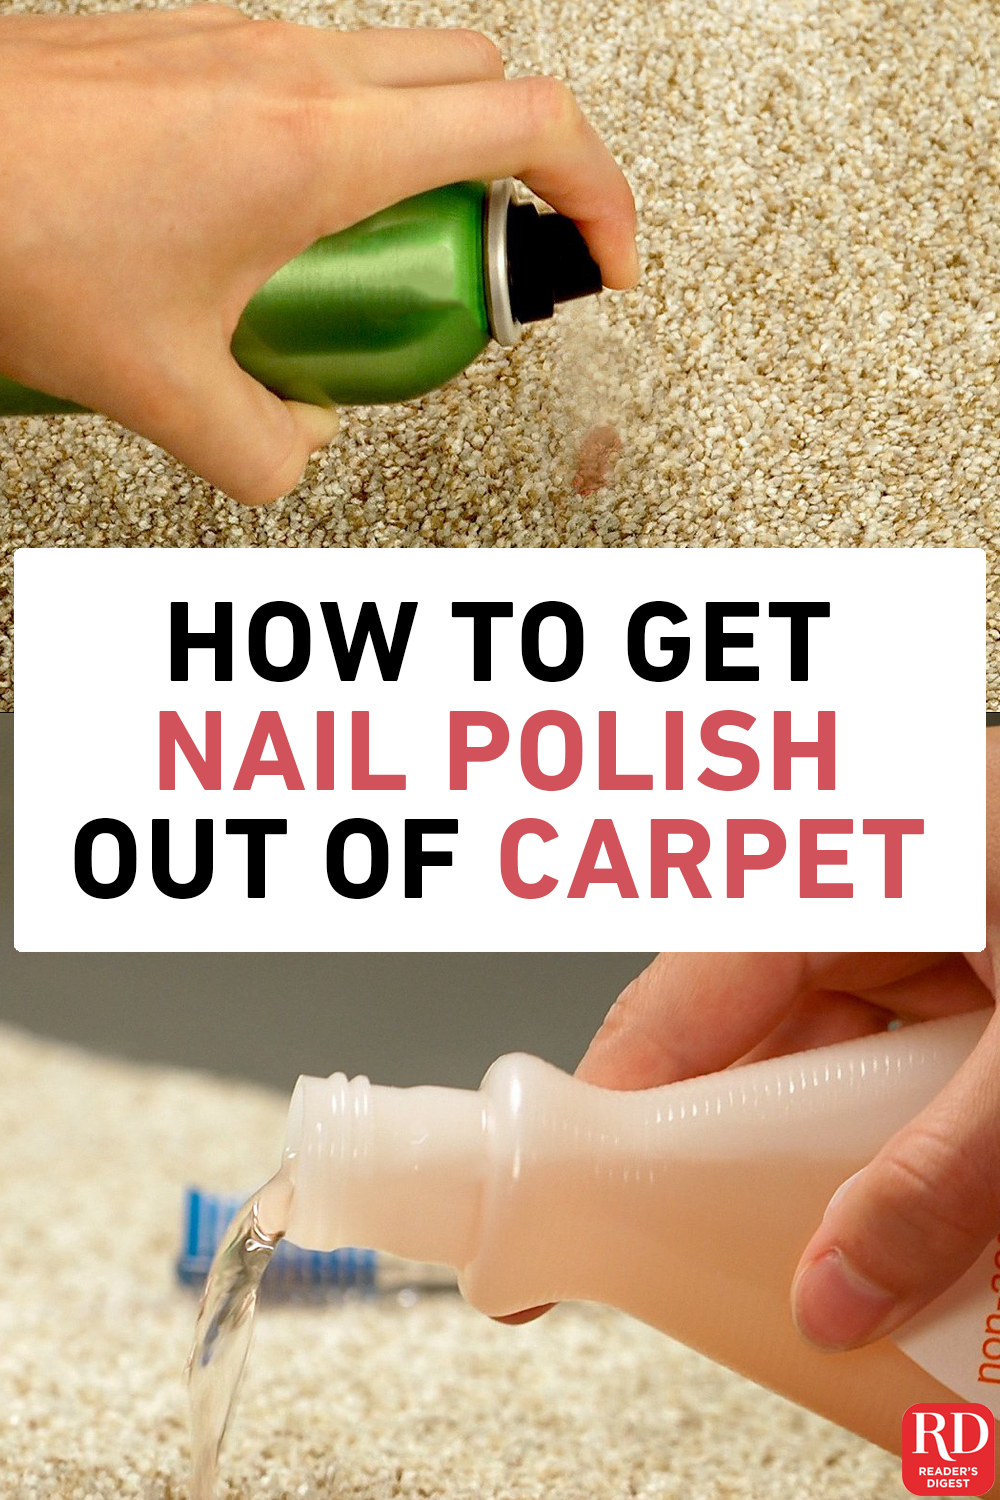 How To Get Nail Polish Out Of Carpet Nailpolish Out Of Carpet Nail Polish Stain Get Nails